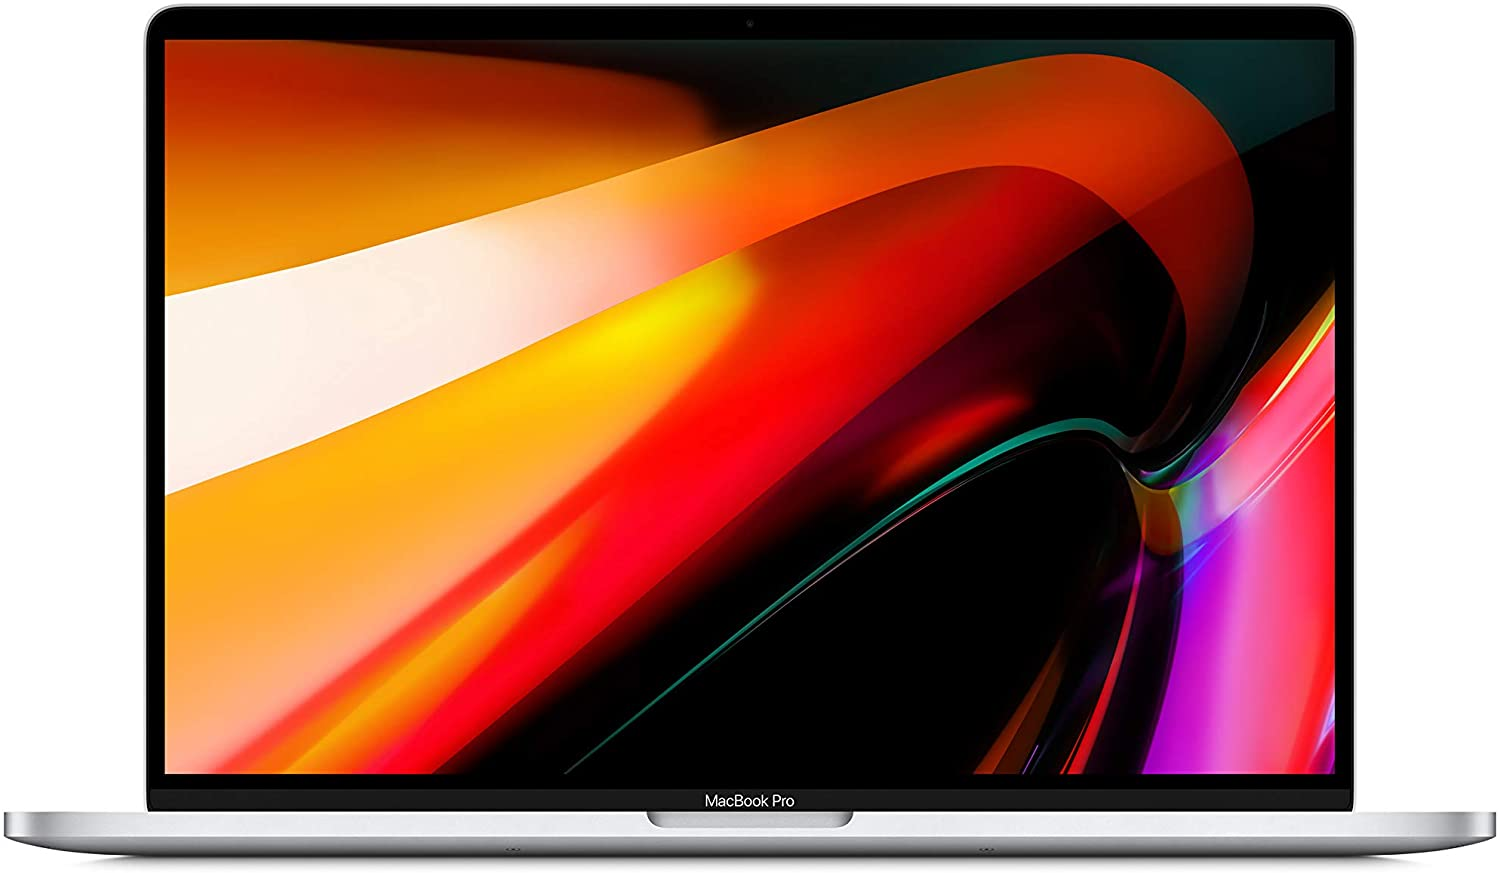 MacBook Pro 1 best laptop for computer science students